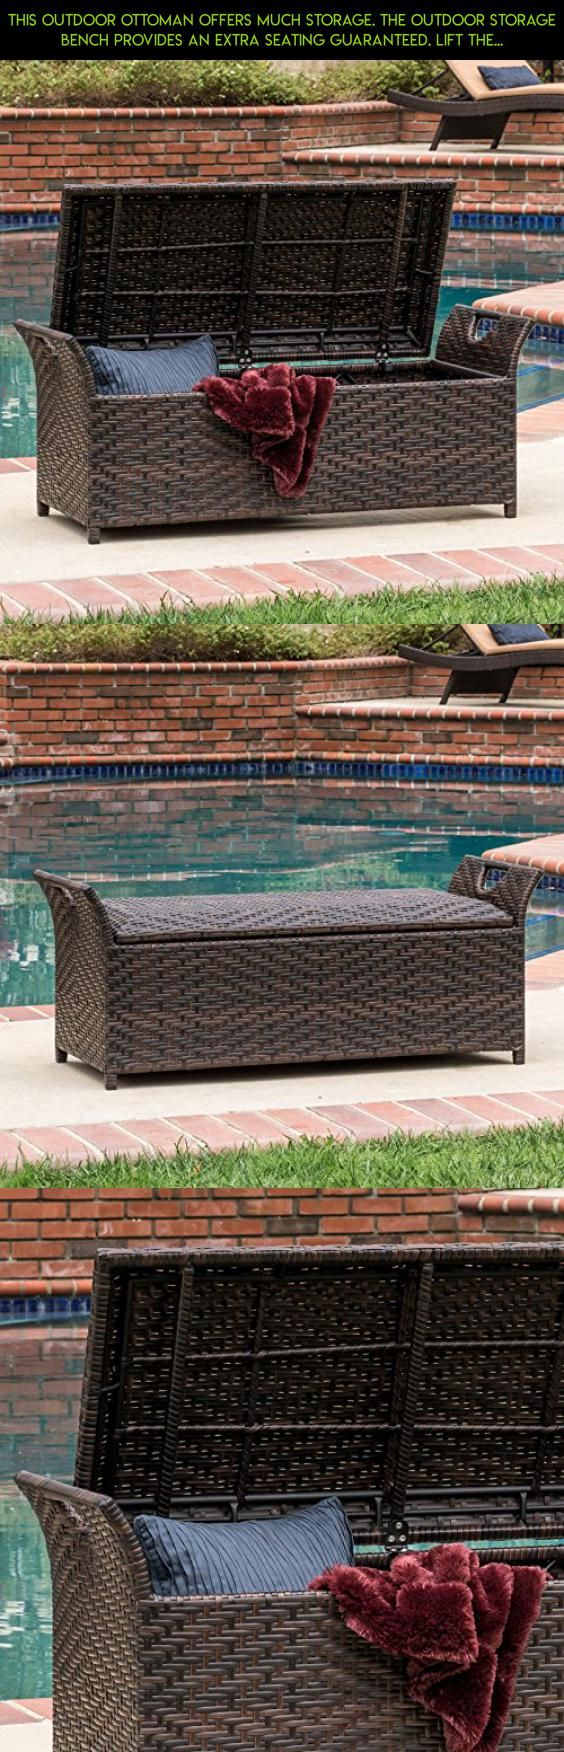 This Outdoor Ottoman Offers Much Storage. The Outdoor Storage Bench  Provides an Extra Seating Guaranteed - 25+ Best Ideas About Outdoor Storage Benches On Pinterest Garden